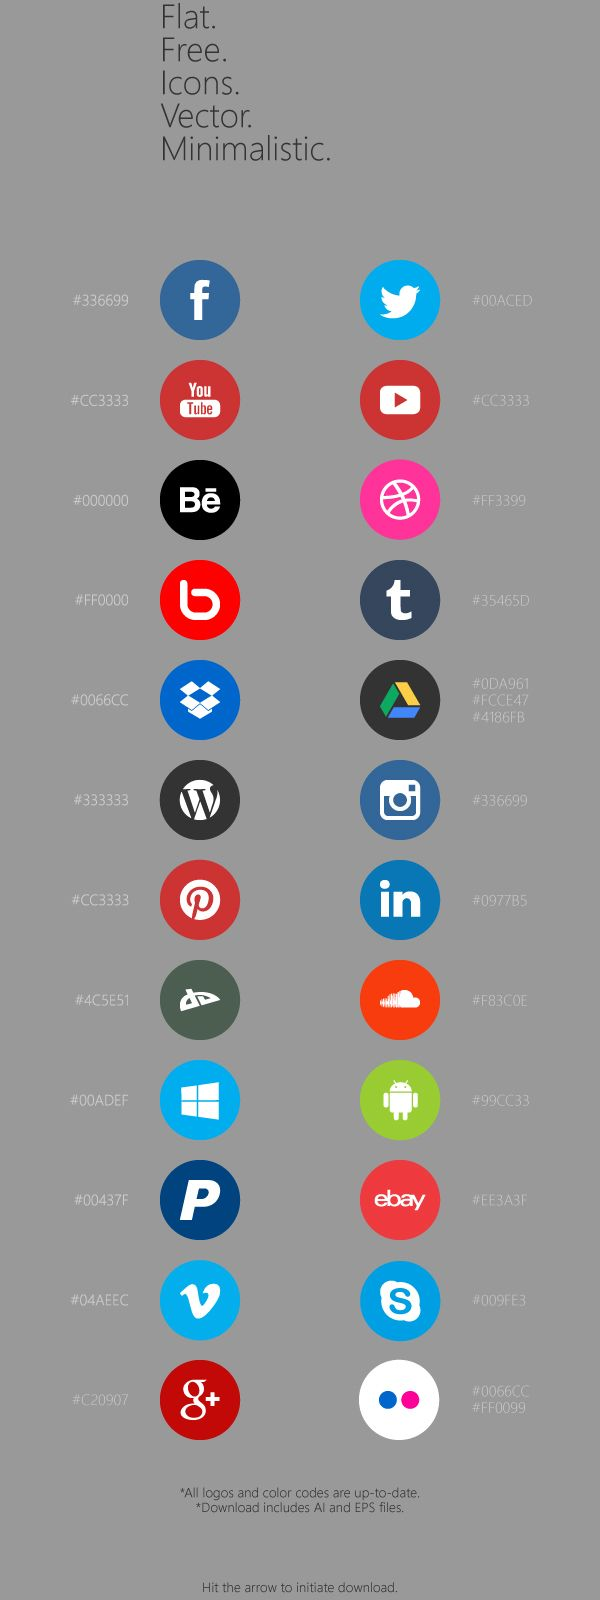 Flat Free Social Icons on Behance